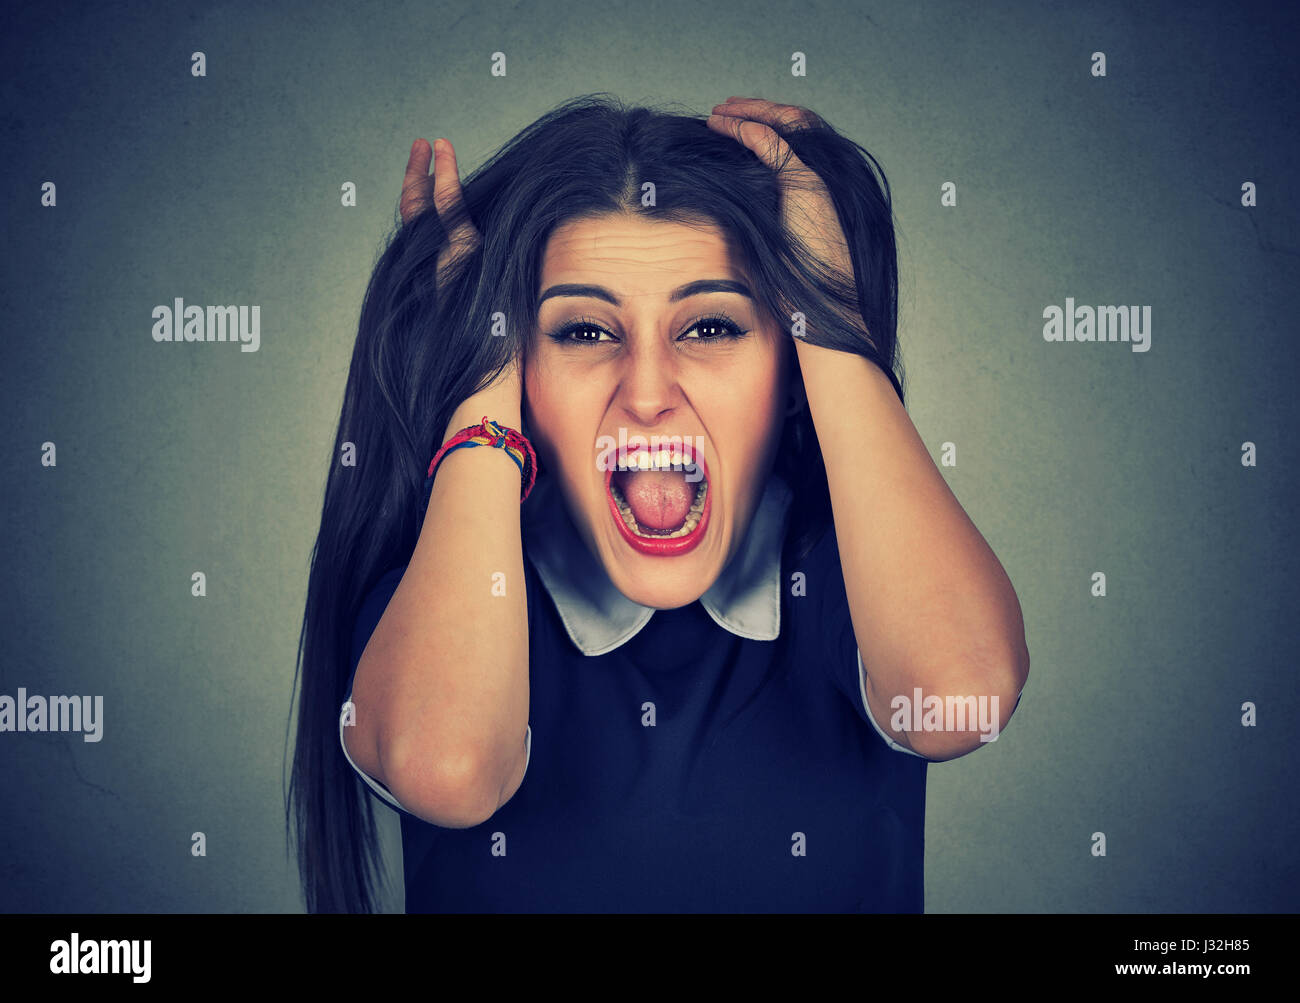 Grimace face clip art stock photo woman pulls a face in upset - Stressed Out Young Woman Pulling Her Hair Stock Image